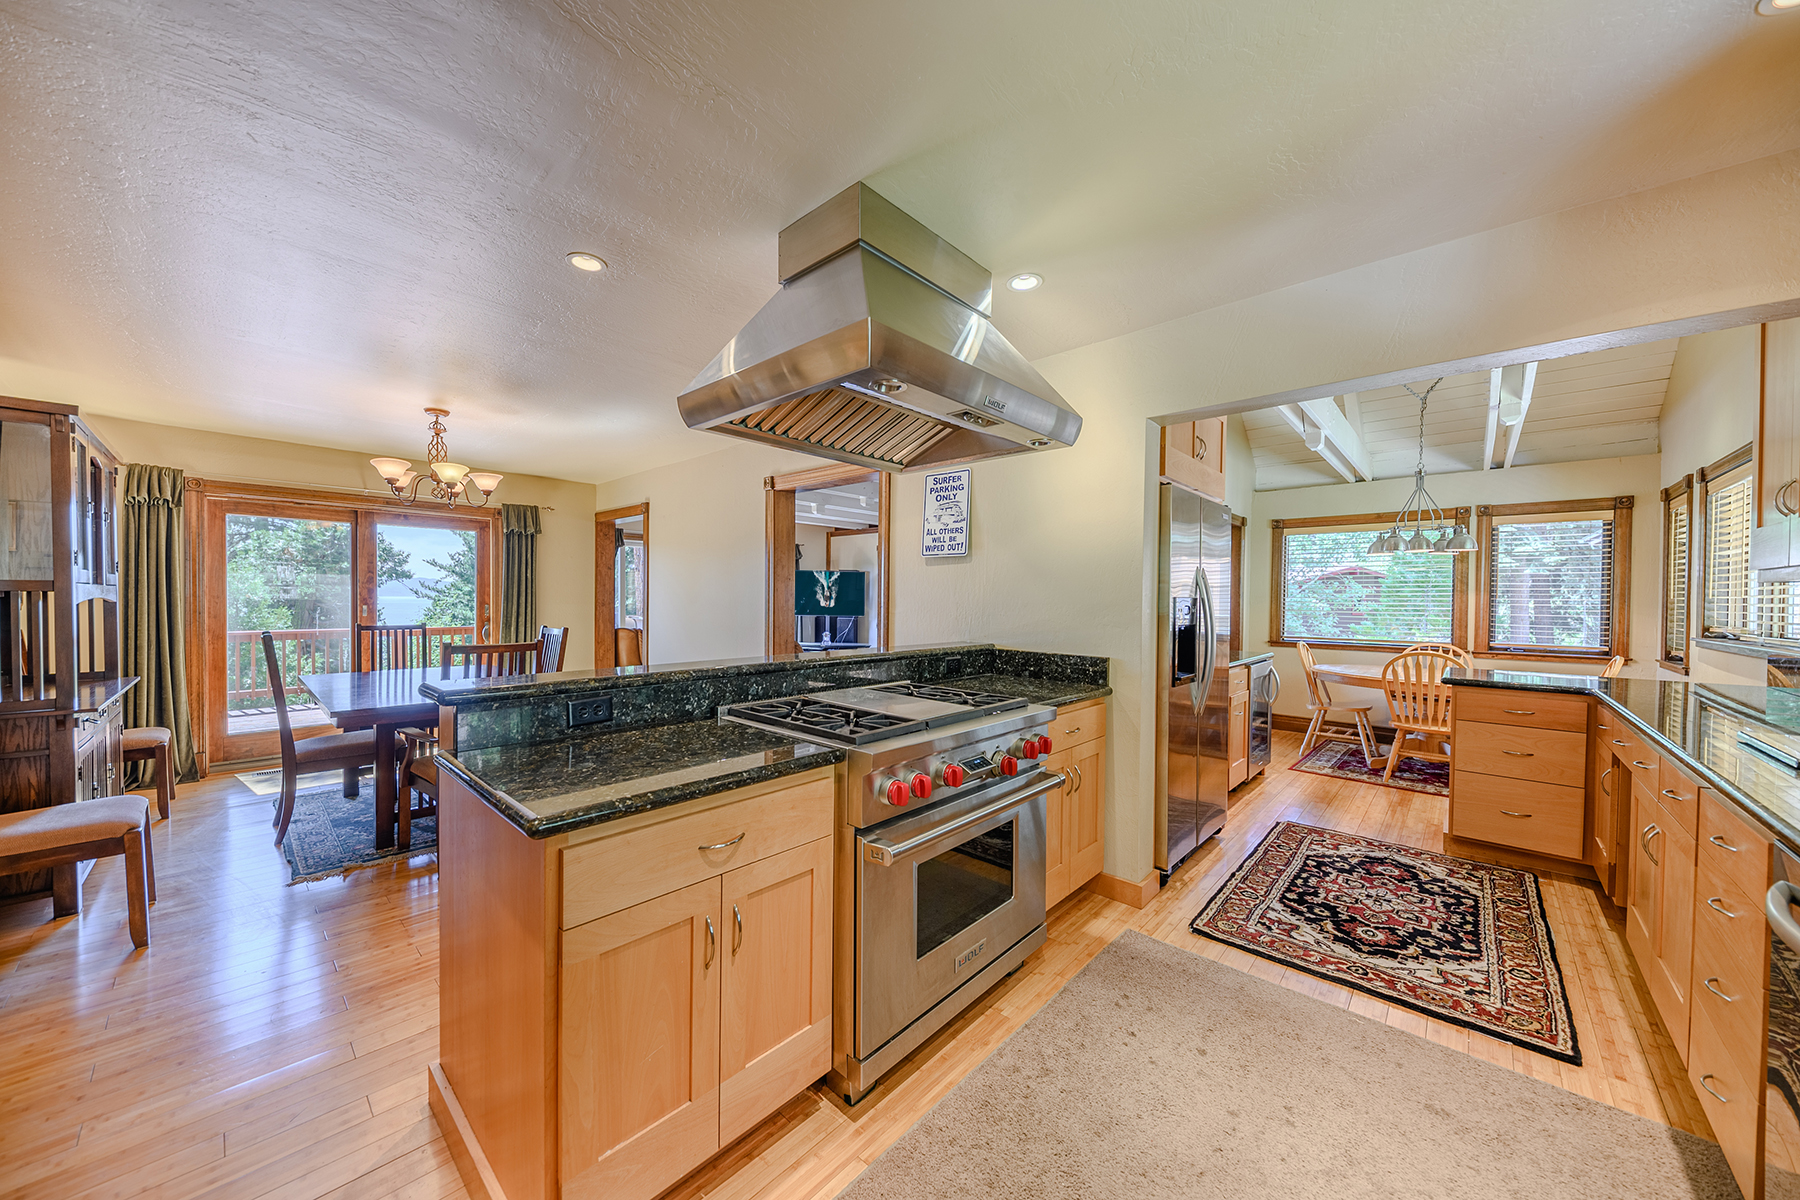 Additional photo for property listing at 301 Wild Rose Drive, Tahoe Vista, CA 96148 301 Wild Rose Drive 塔霍湖, 加利福尼亚州 96145 美国